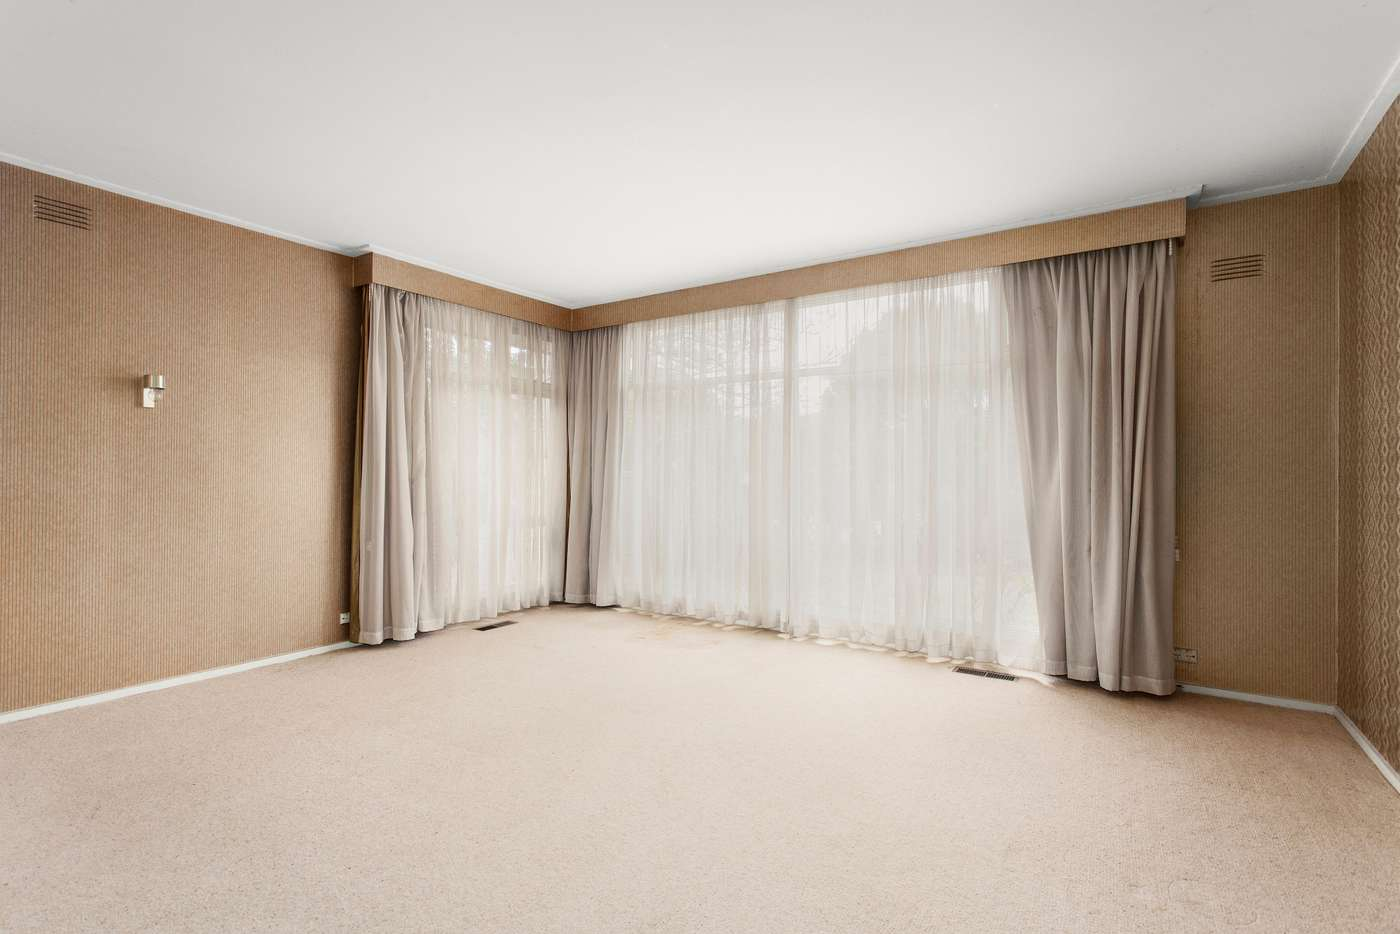 Fifth view of Homely house listing, 22 Macgowan Avenue, Glen Huntly VIC 3163